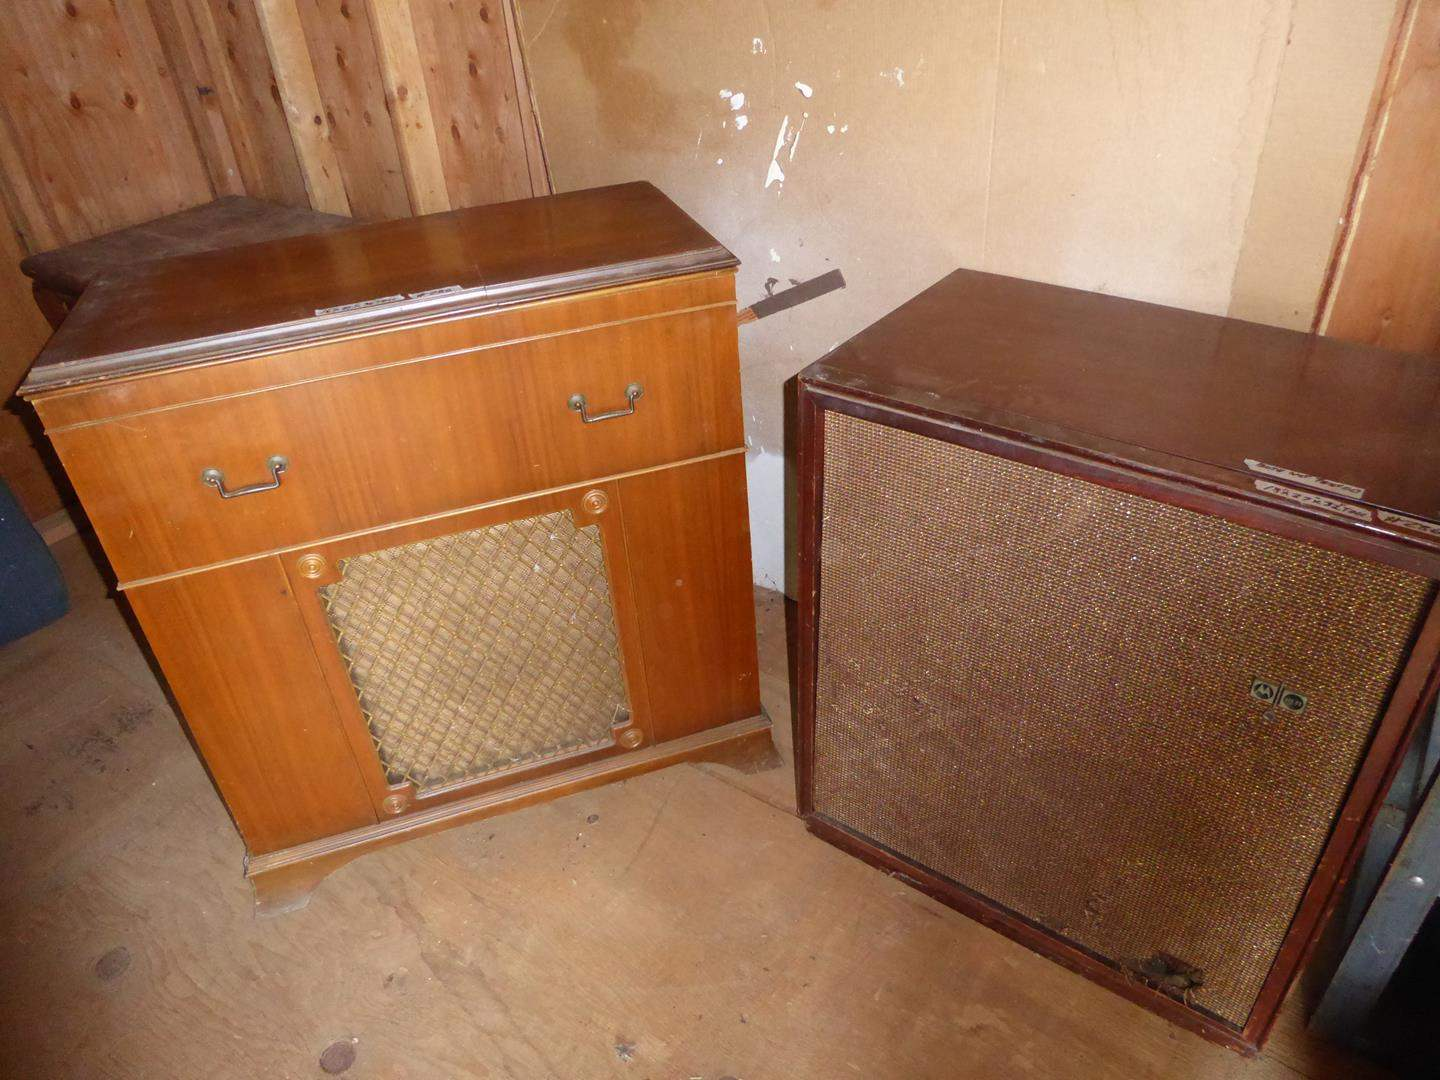 Lot # 286 - Vintage Motorola Golden Voice Record Player Console & Vintage Radio Record Player Console - Both Not Tested (main image)